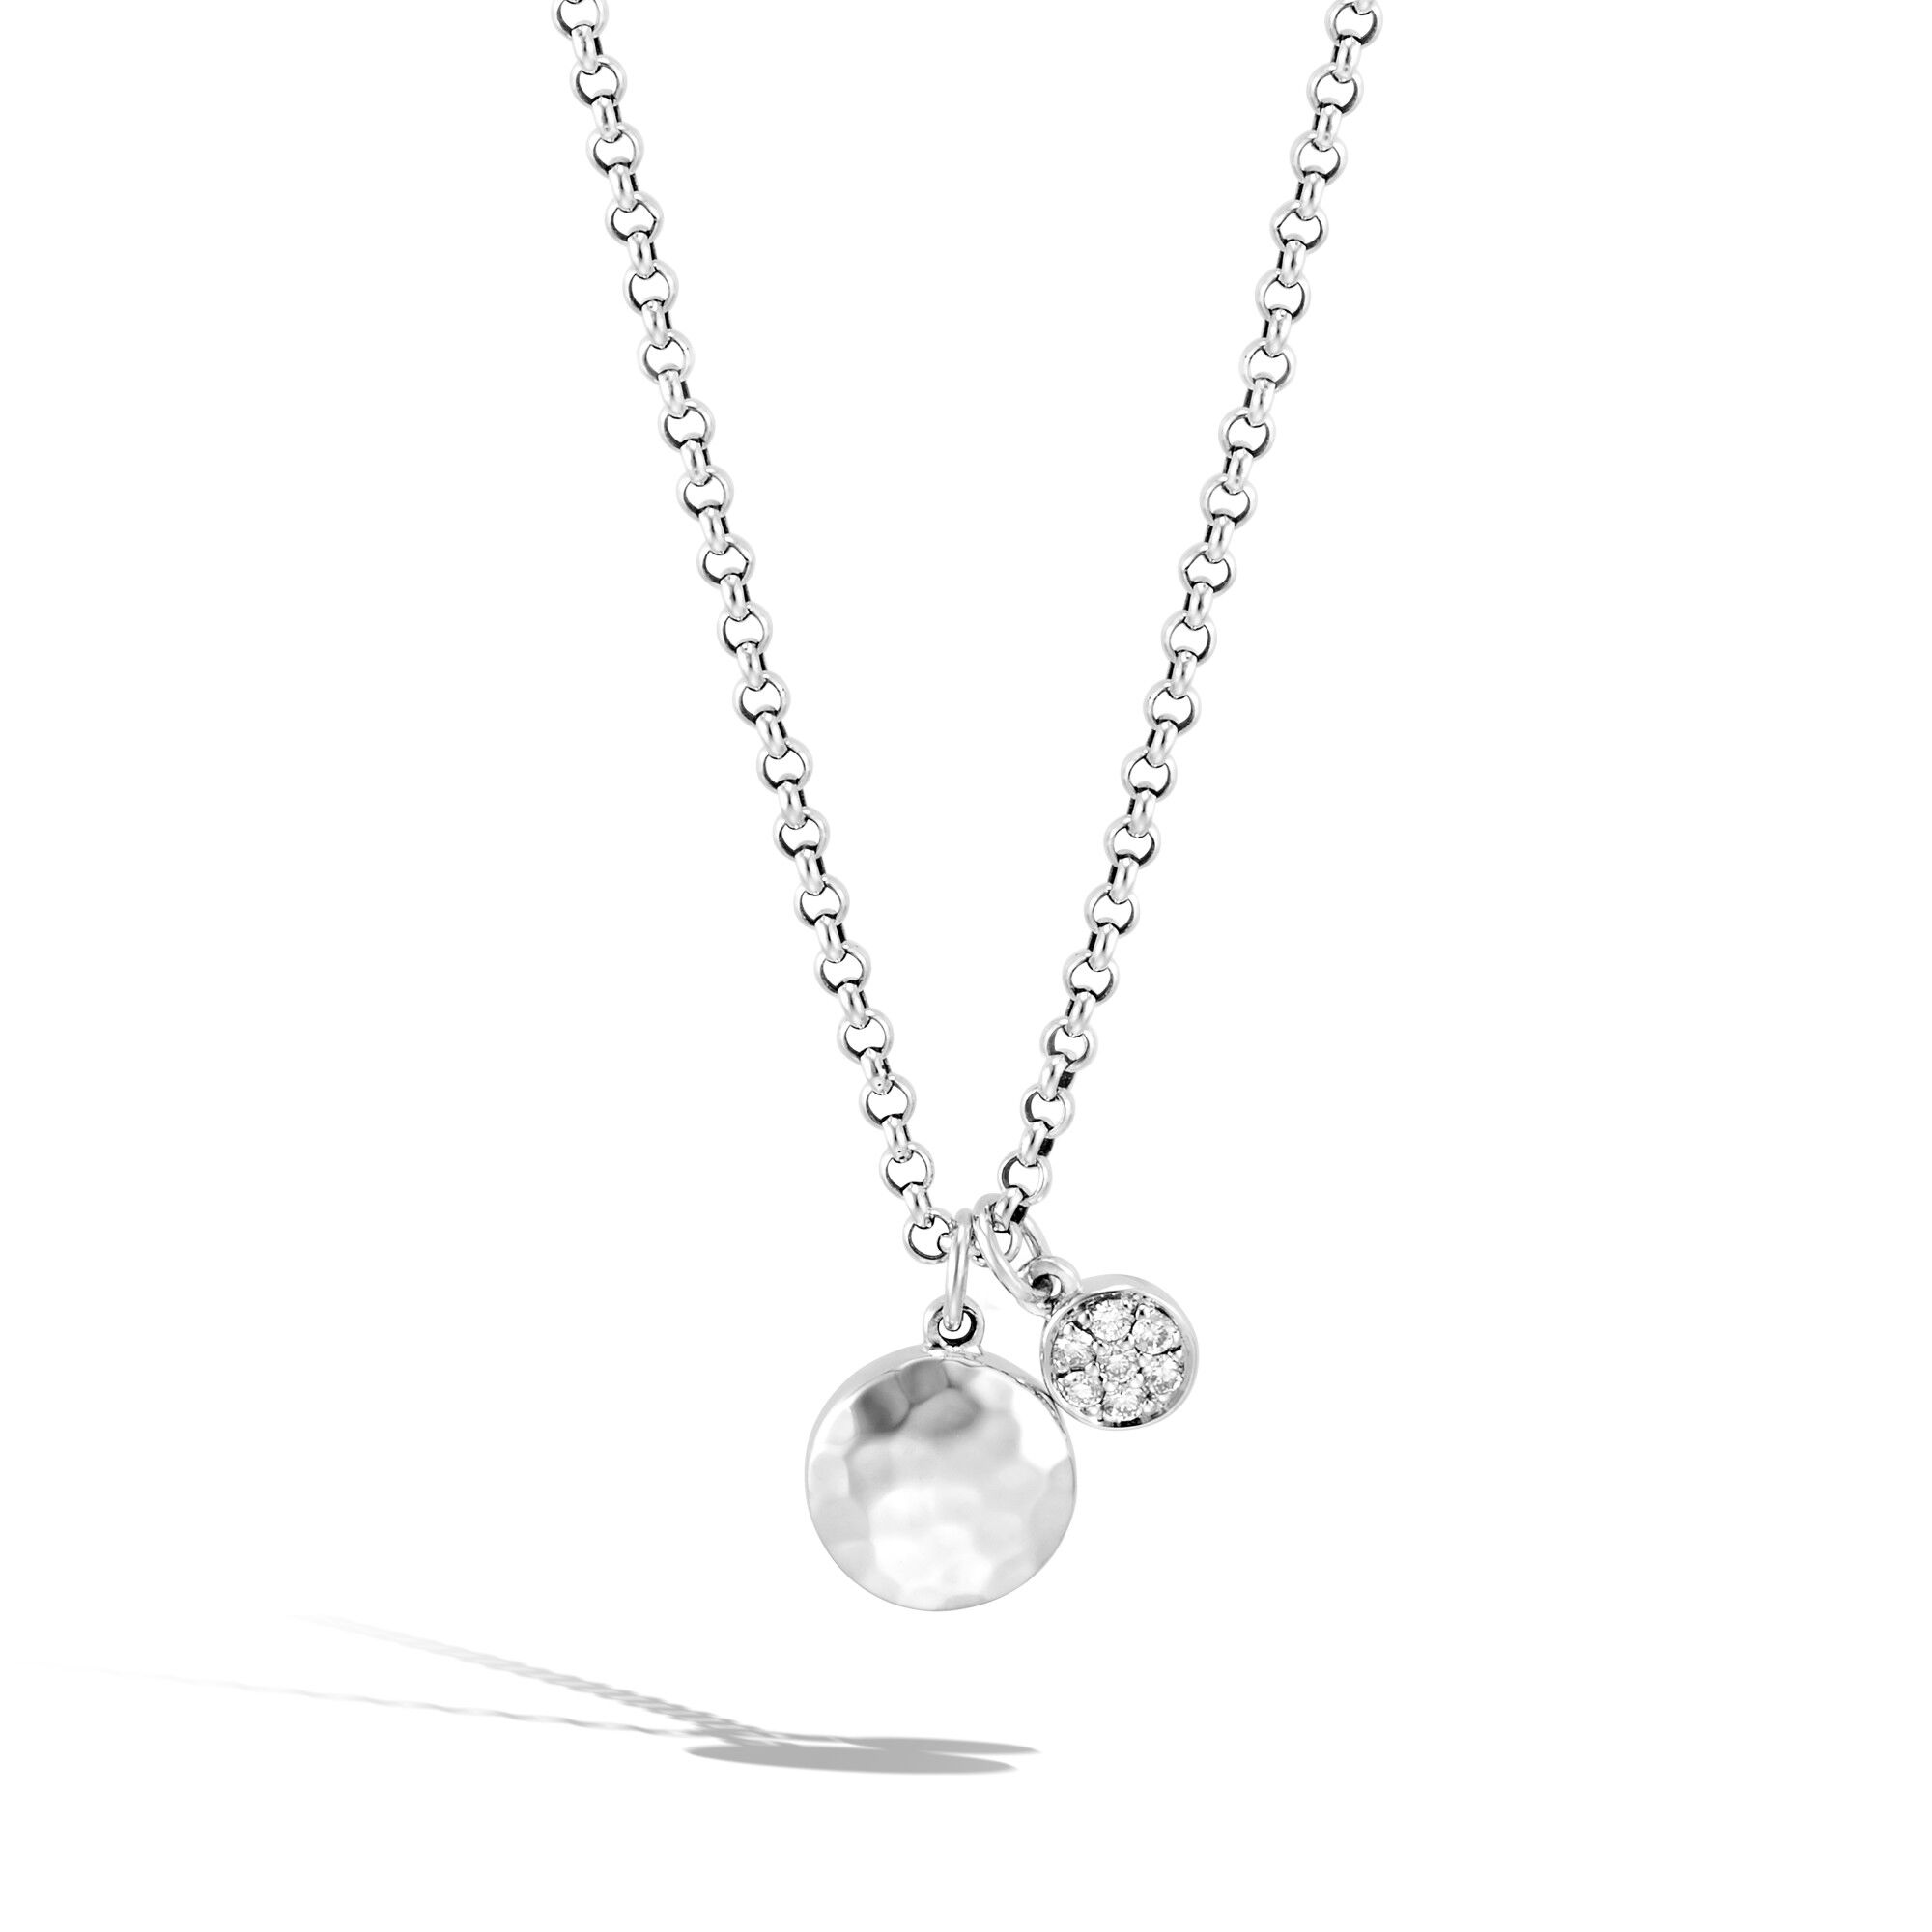 Dot Pendant Necklace in Hammered Silver with Diamonds, , large